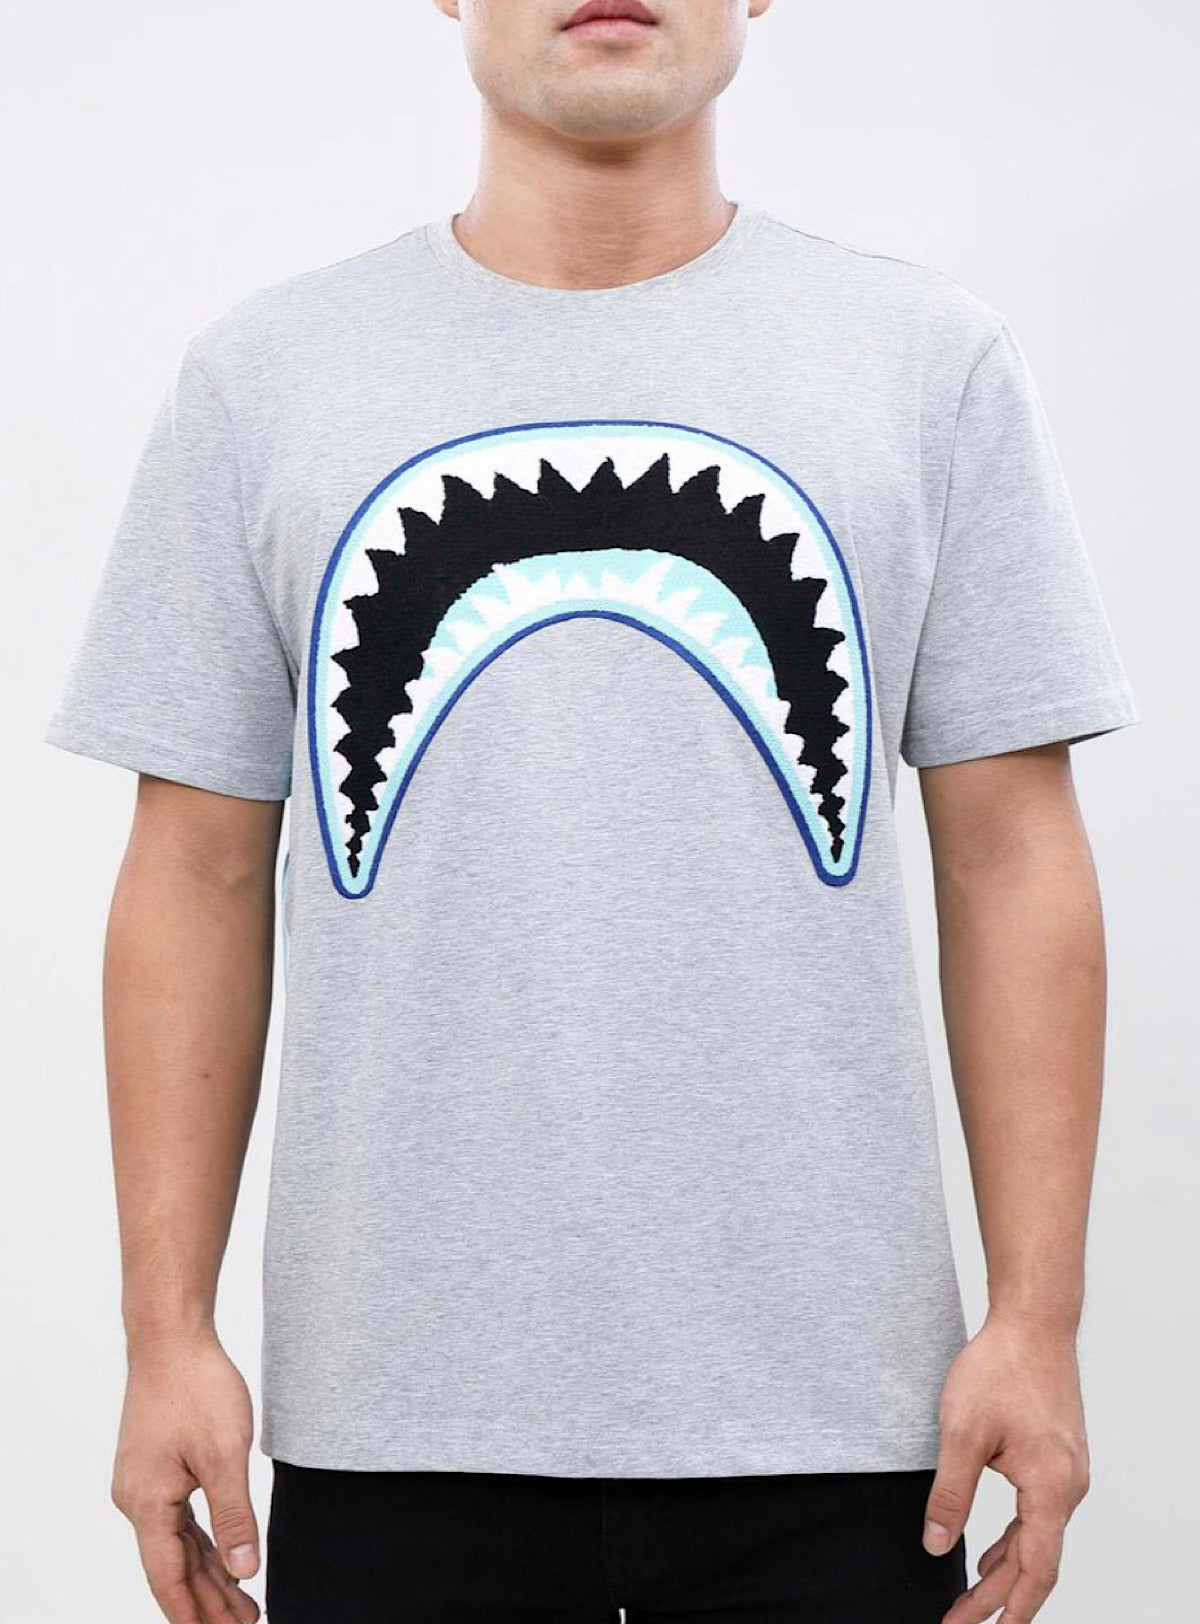 Eternity T-Shirt - Shark Mouth - Grey - E1133195